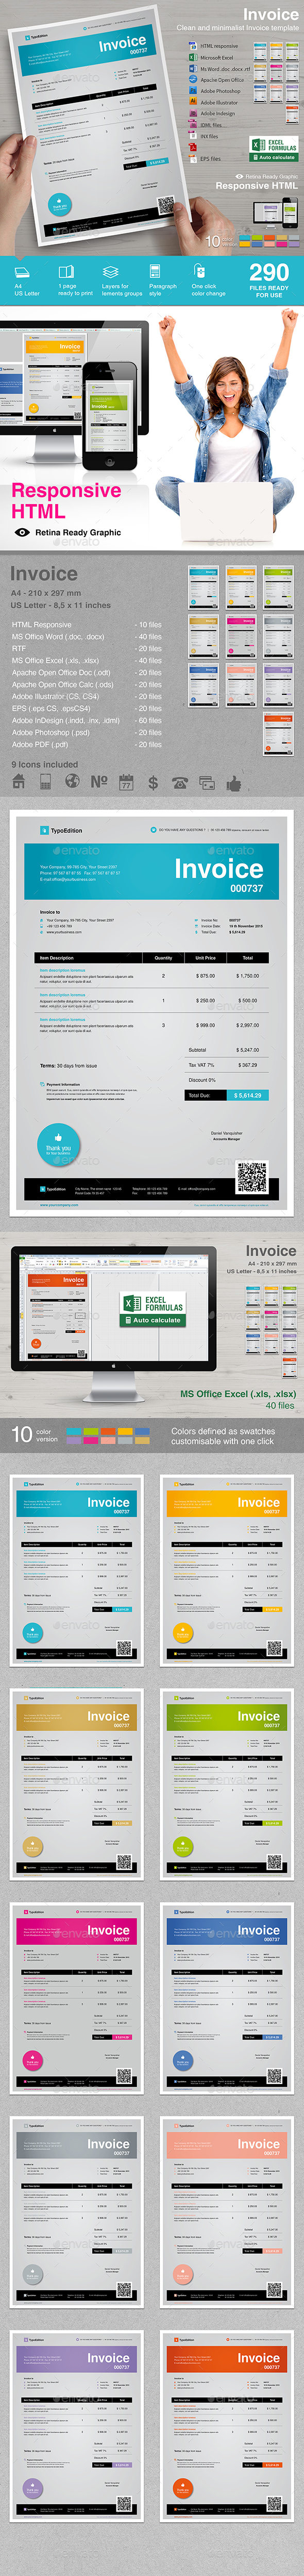 Invoices - Proposals & Invoices Stationery